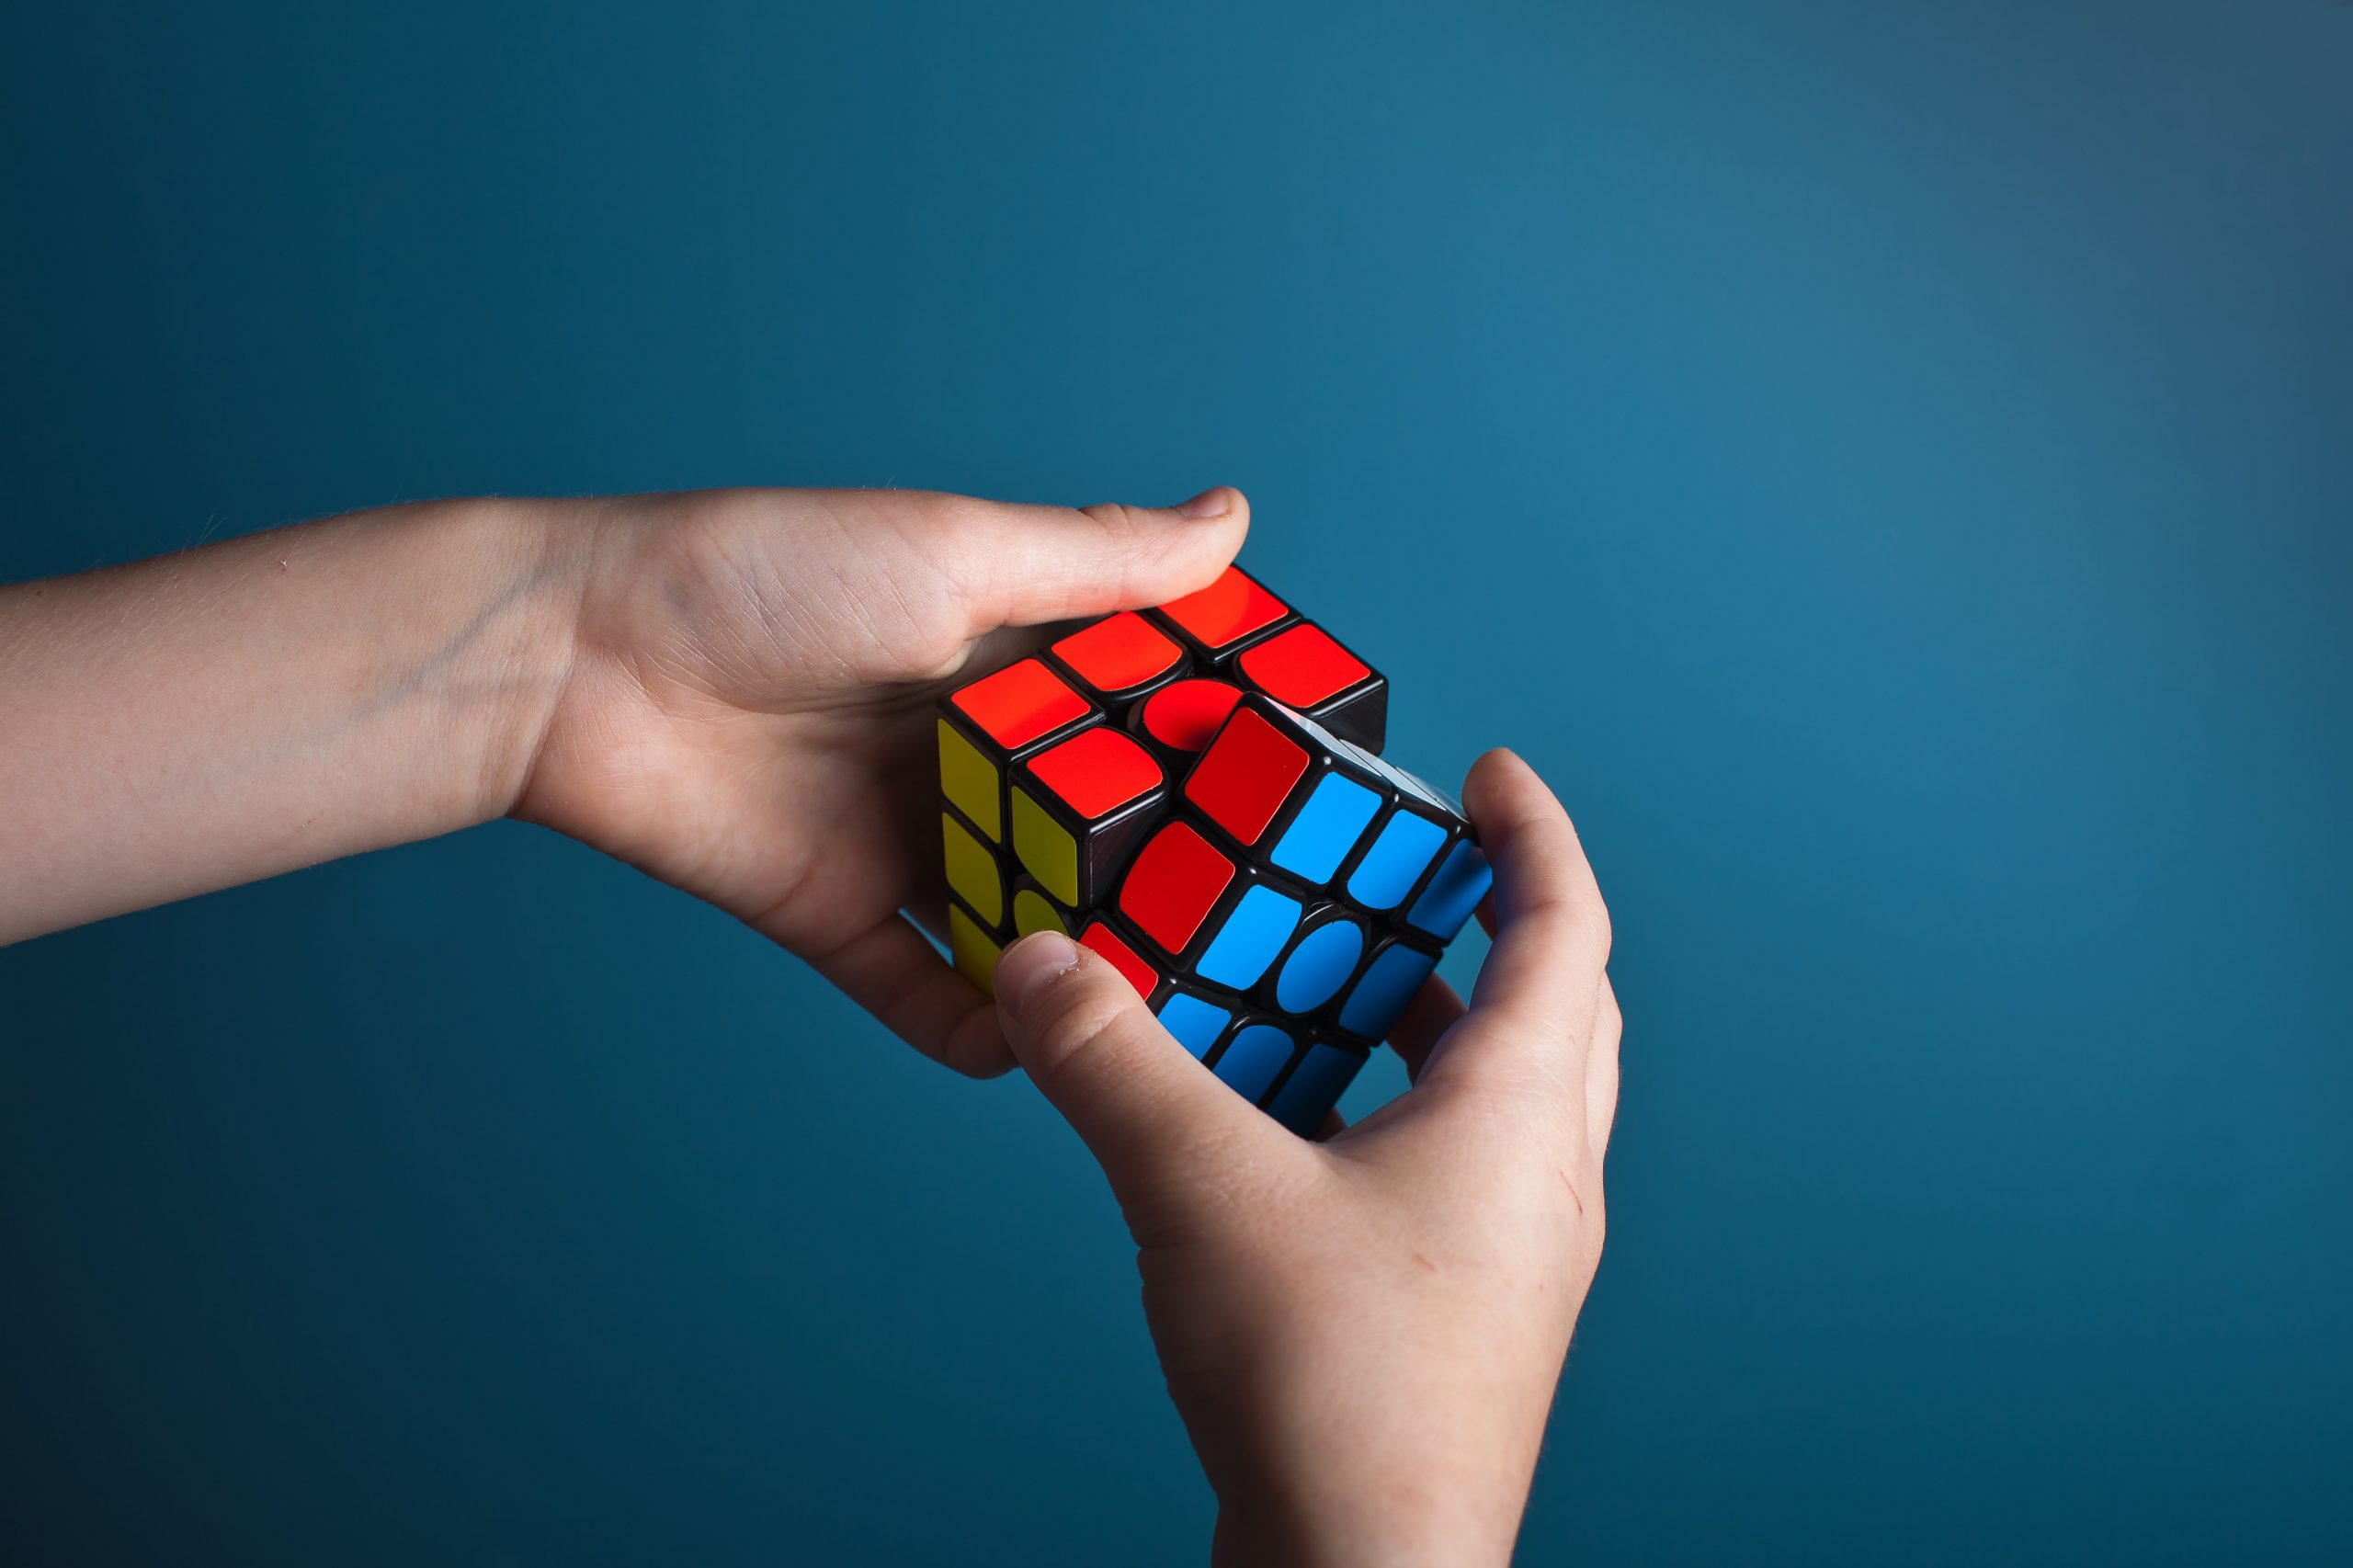 a rubiks cube about to be completed